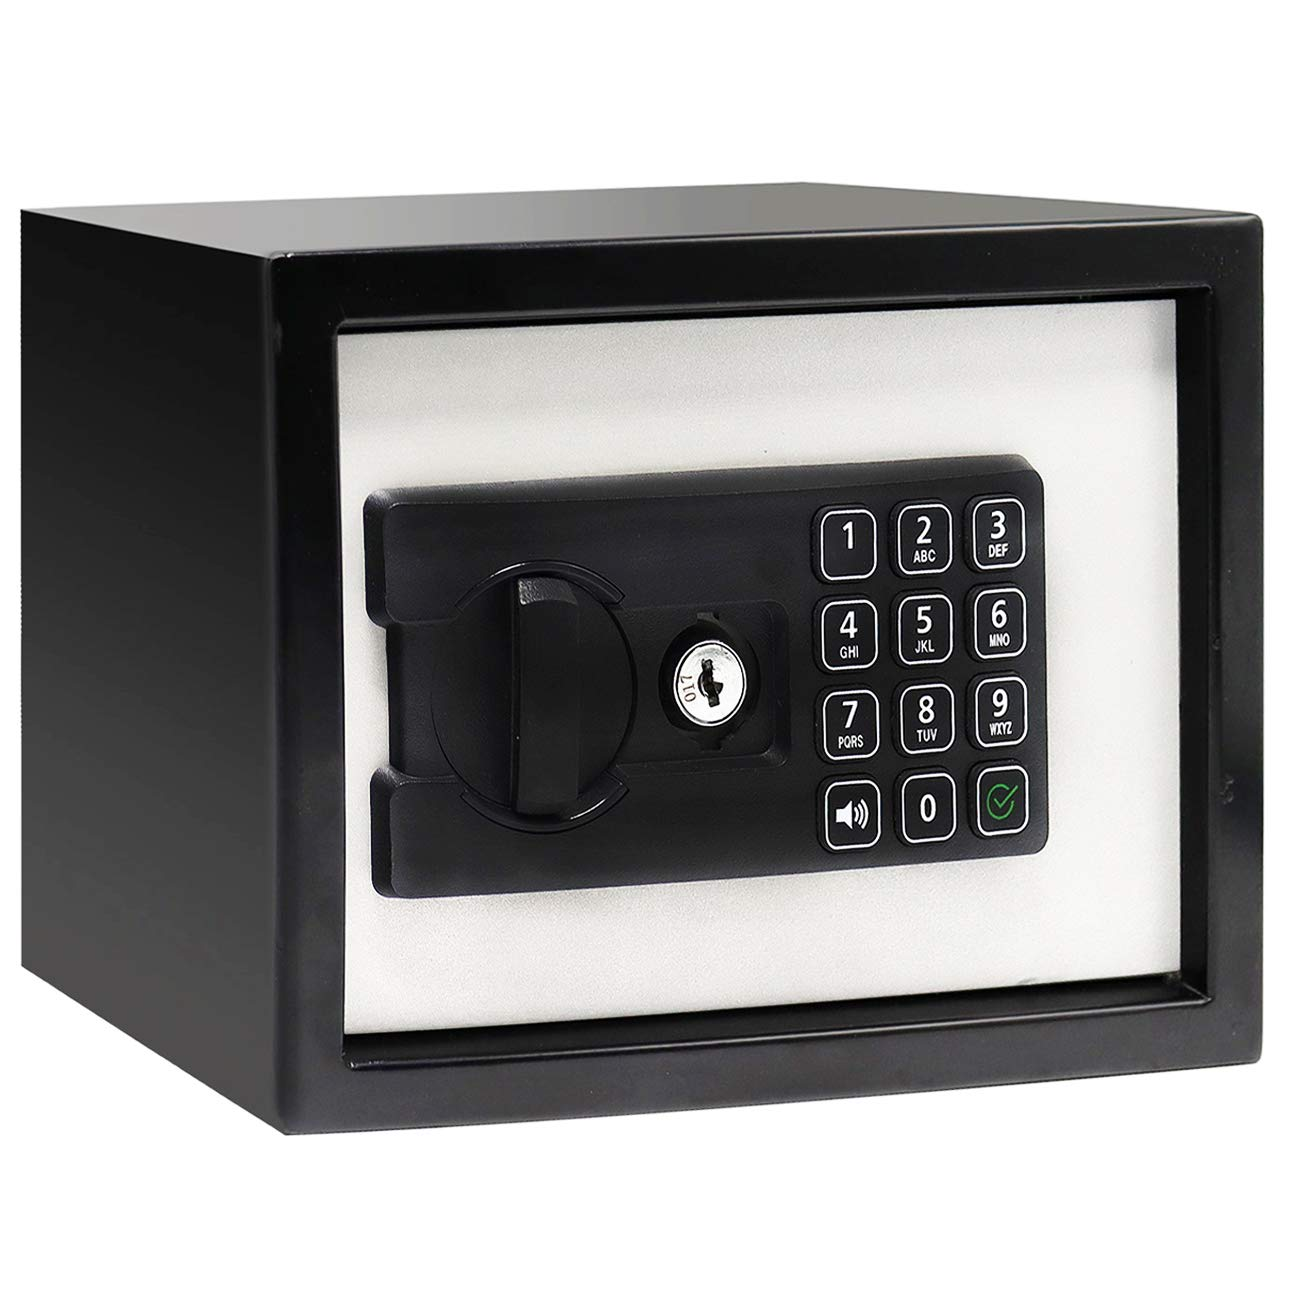 Jolitac Digital Security Cabinet Safe Box Solid Steel, Small Electronic Depository Safe w/Deadbolt Lock Wall-Anchoring Home Office use for Deposit Money Gun Jewelry Cash 9''x7''x7'' (0.26 Cubic Feet) by Jolitac